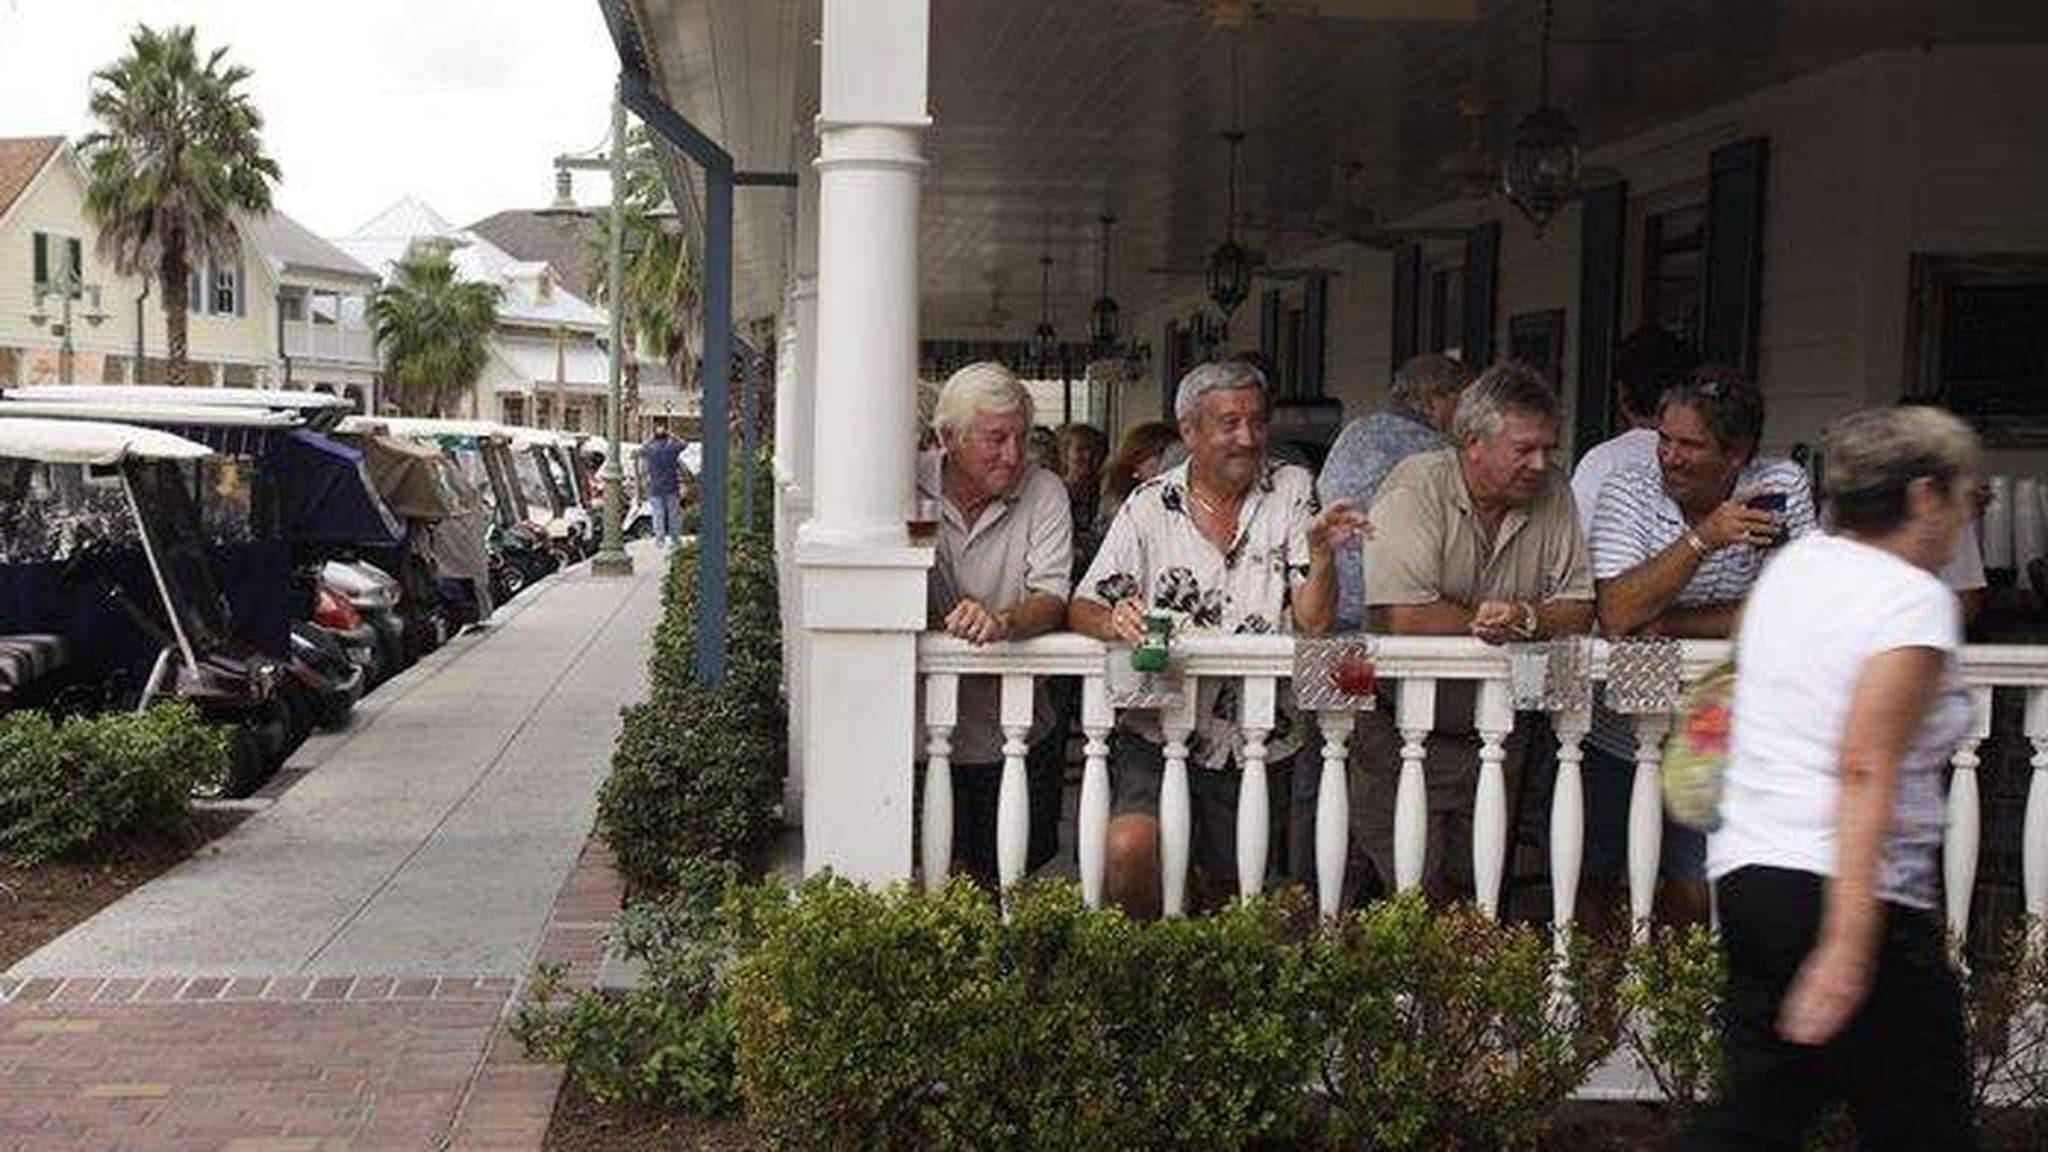 The Villages in Florida